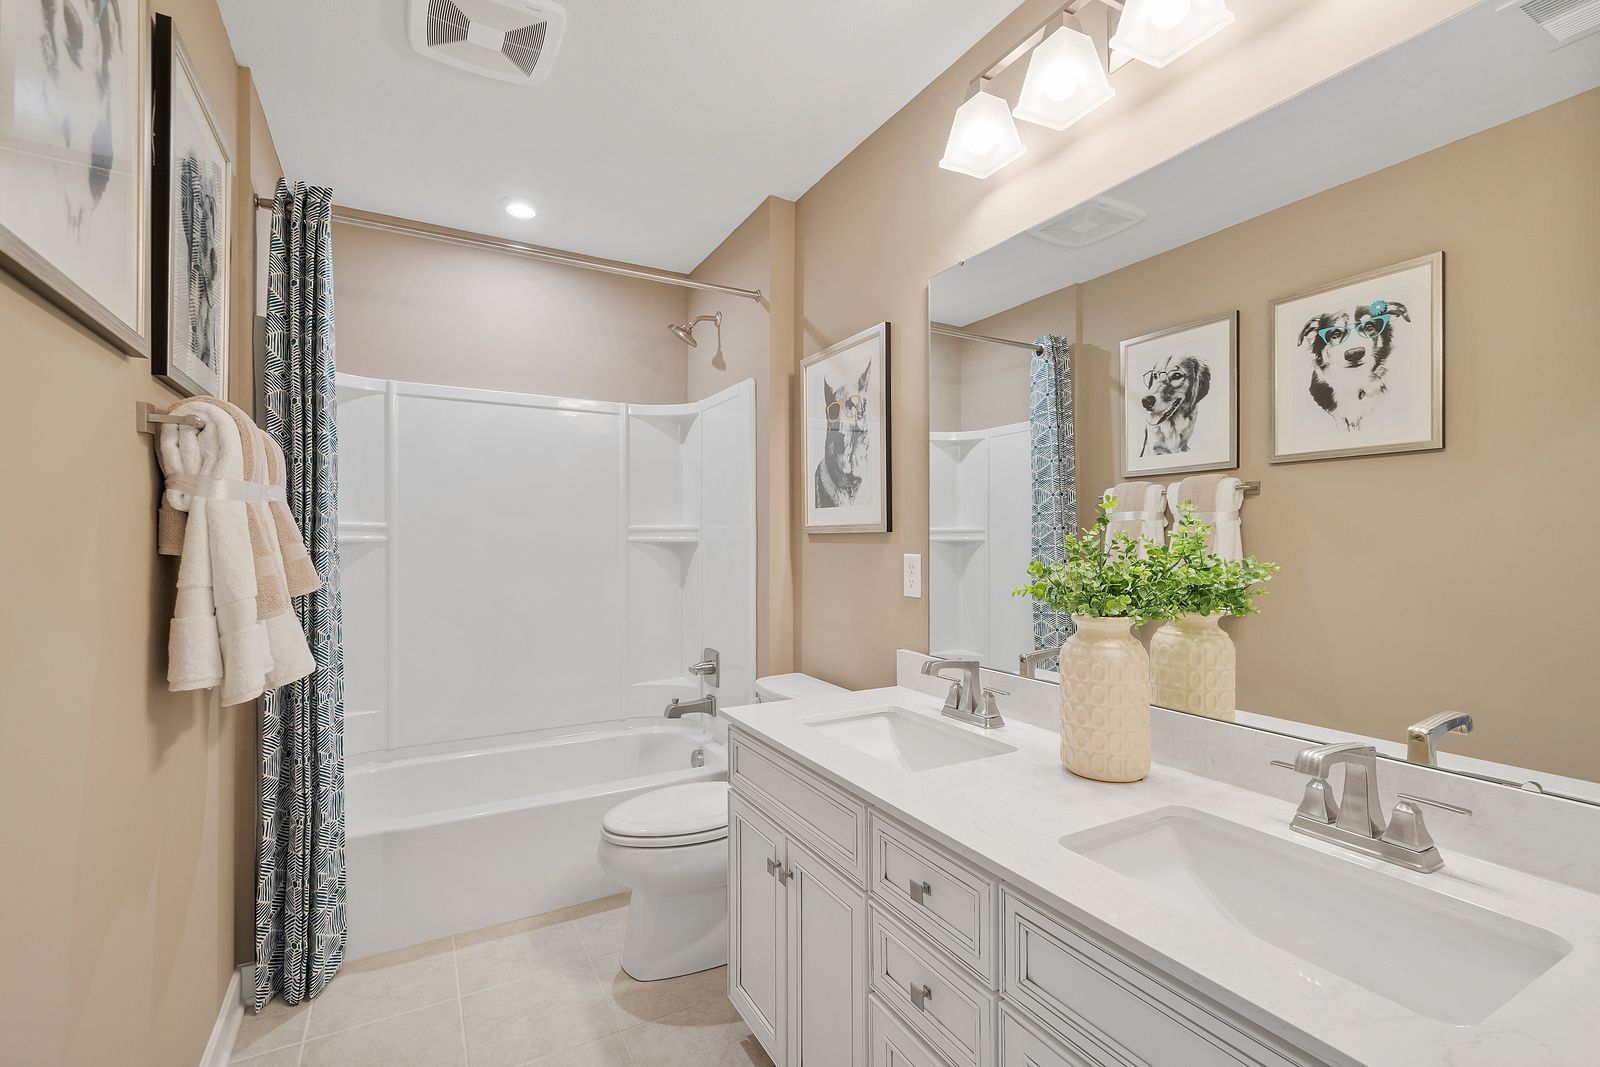 Bathroom featured in the Columbia By Ryan Homes in Charlotte, NC